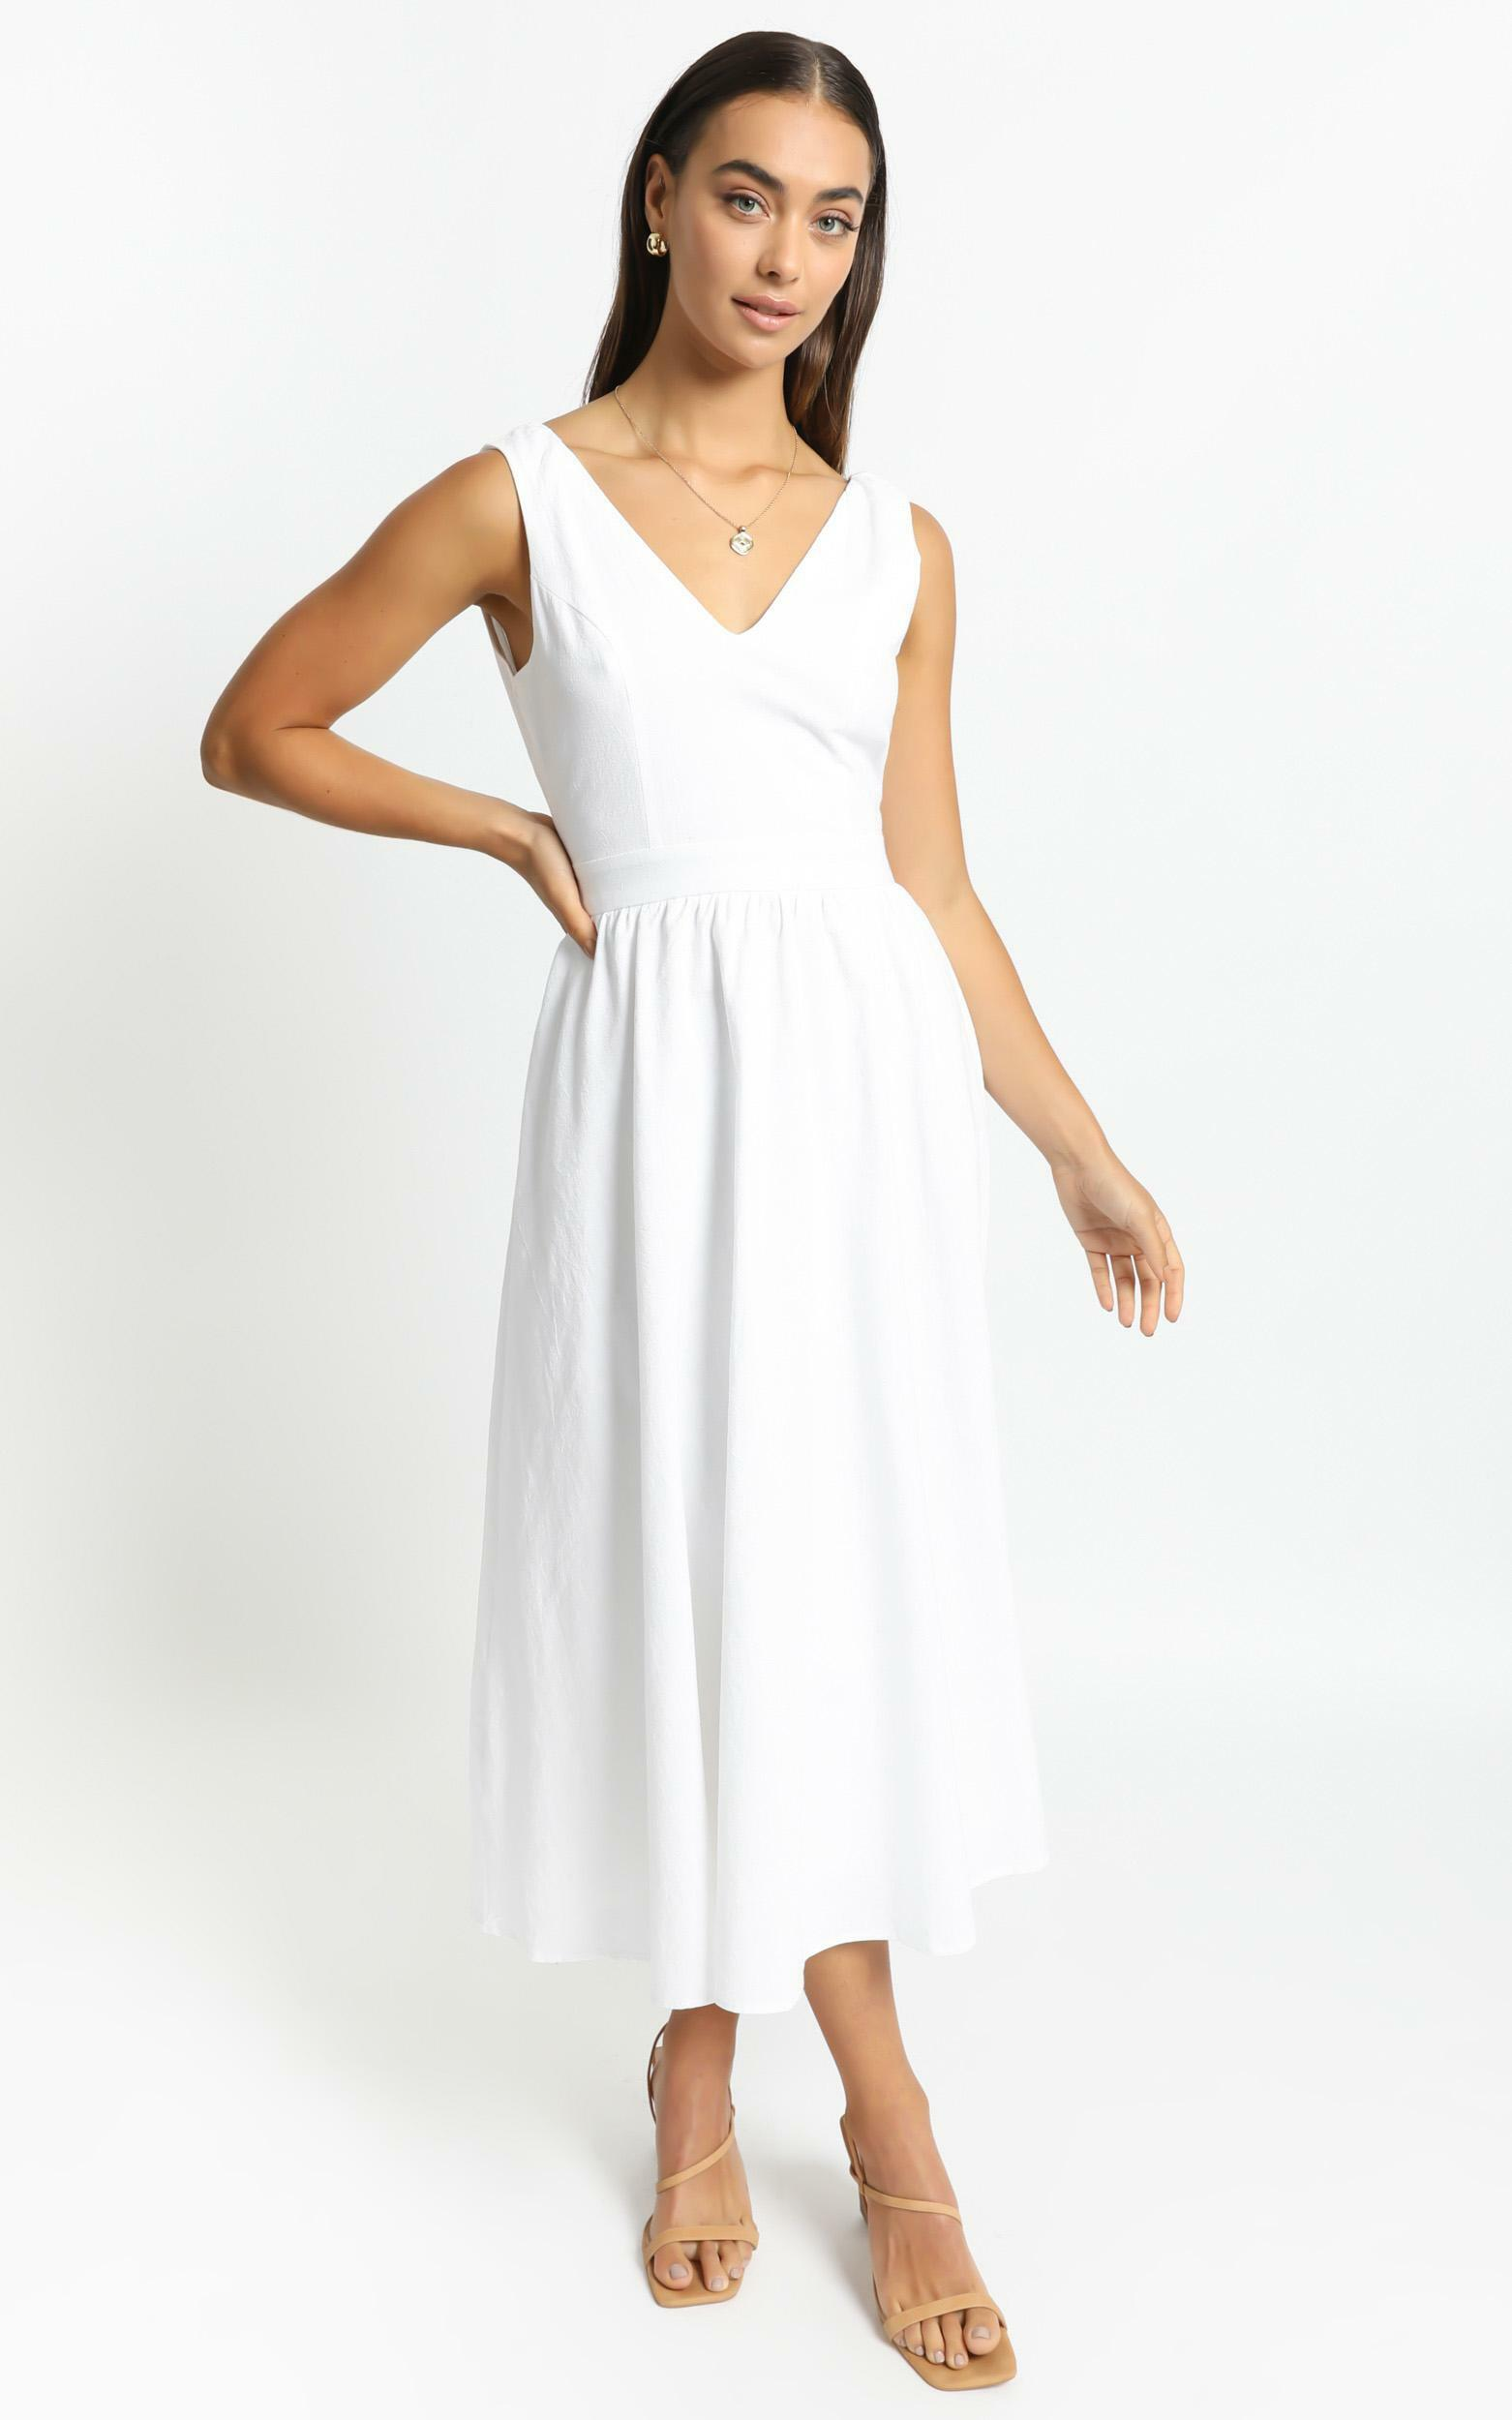 Carrington Dress in White - 6 (XS), White, hi-res image number null